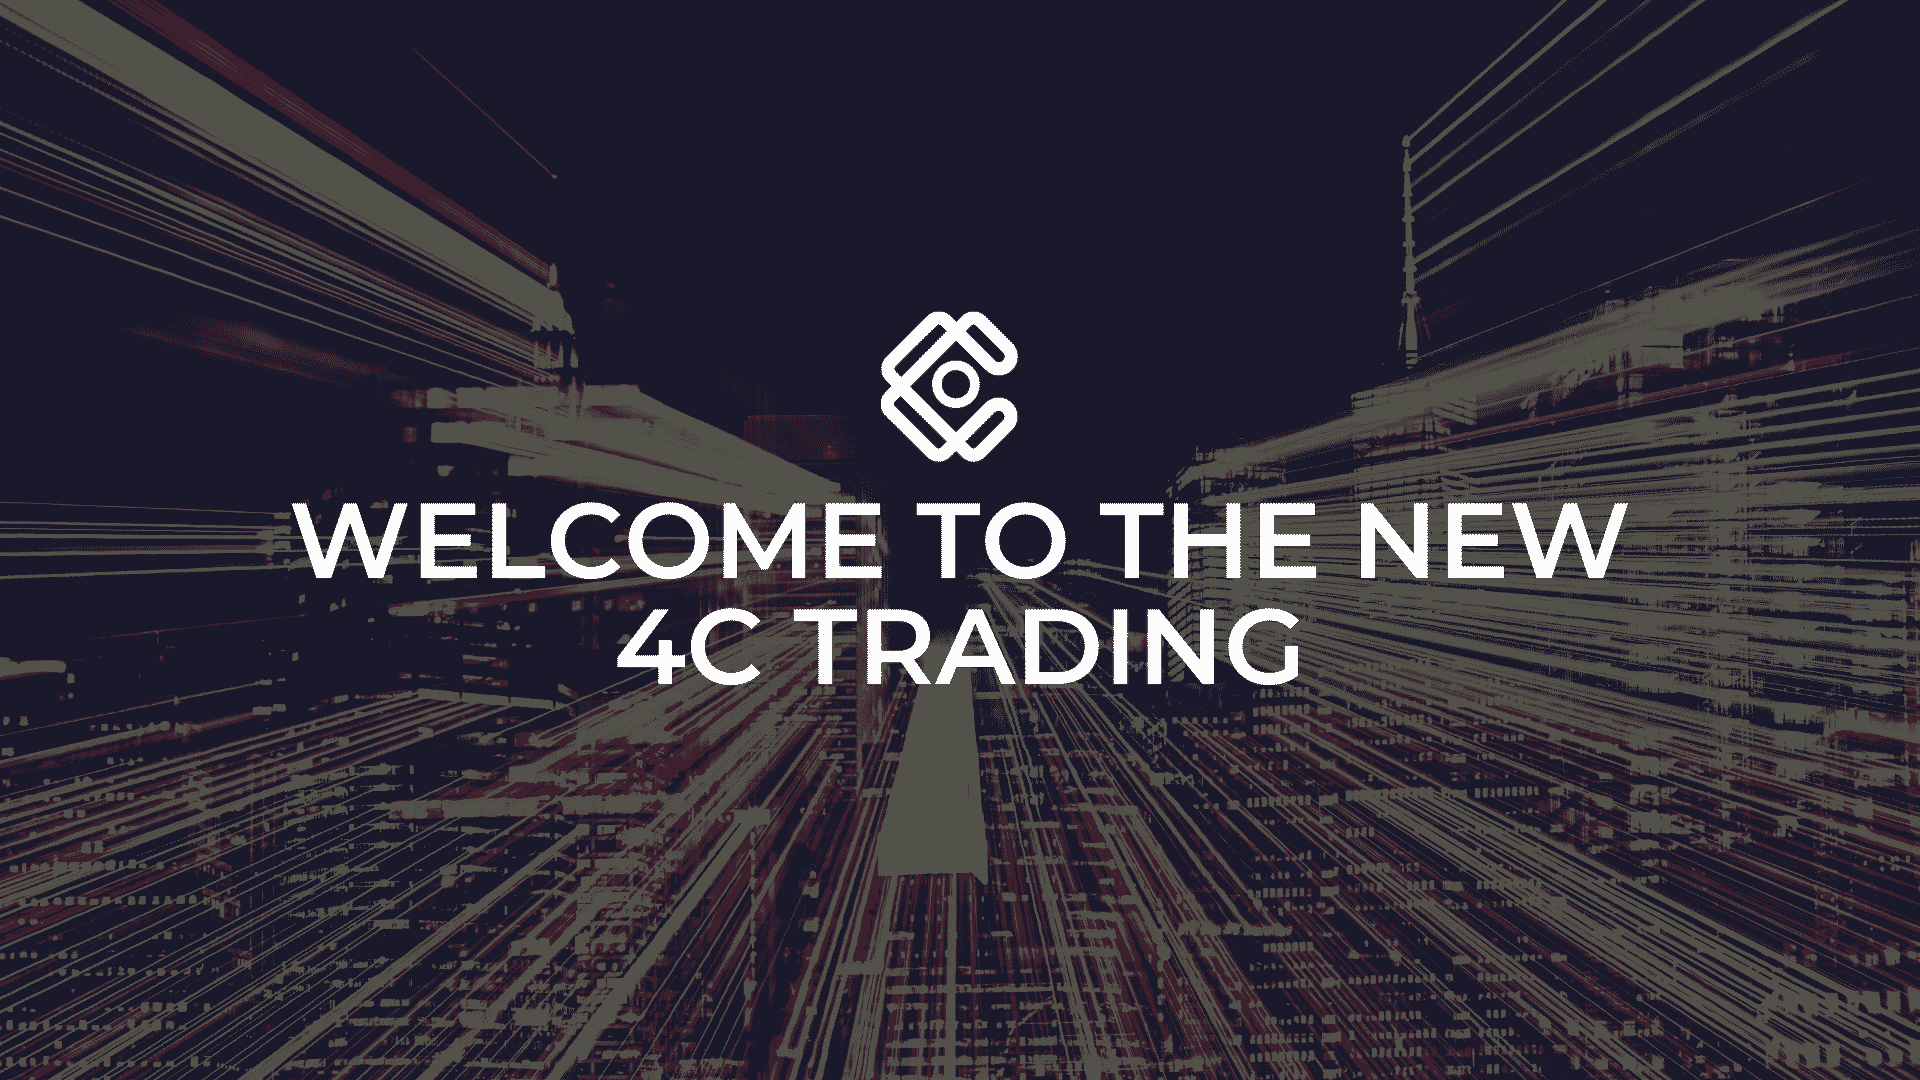 Welcome to the new 4C Trading